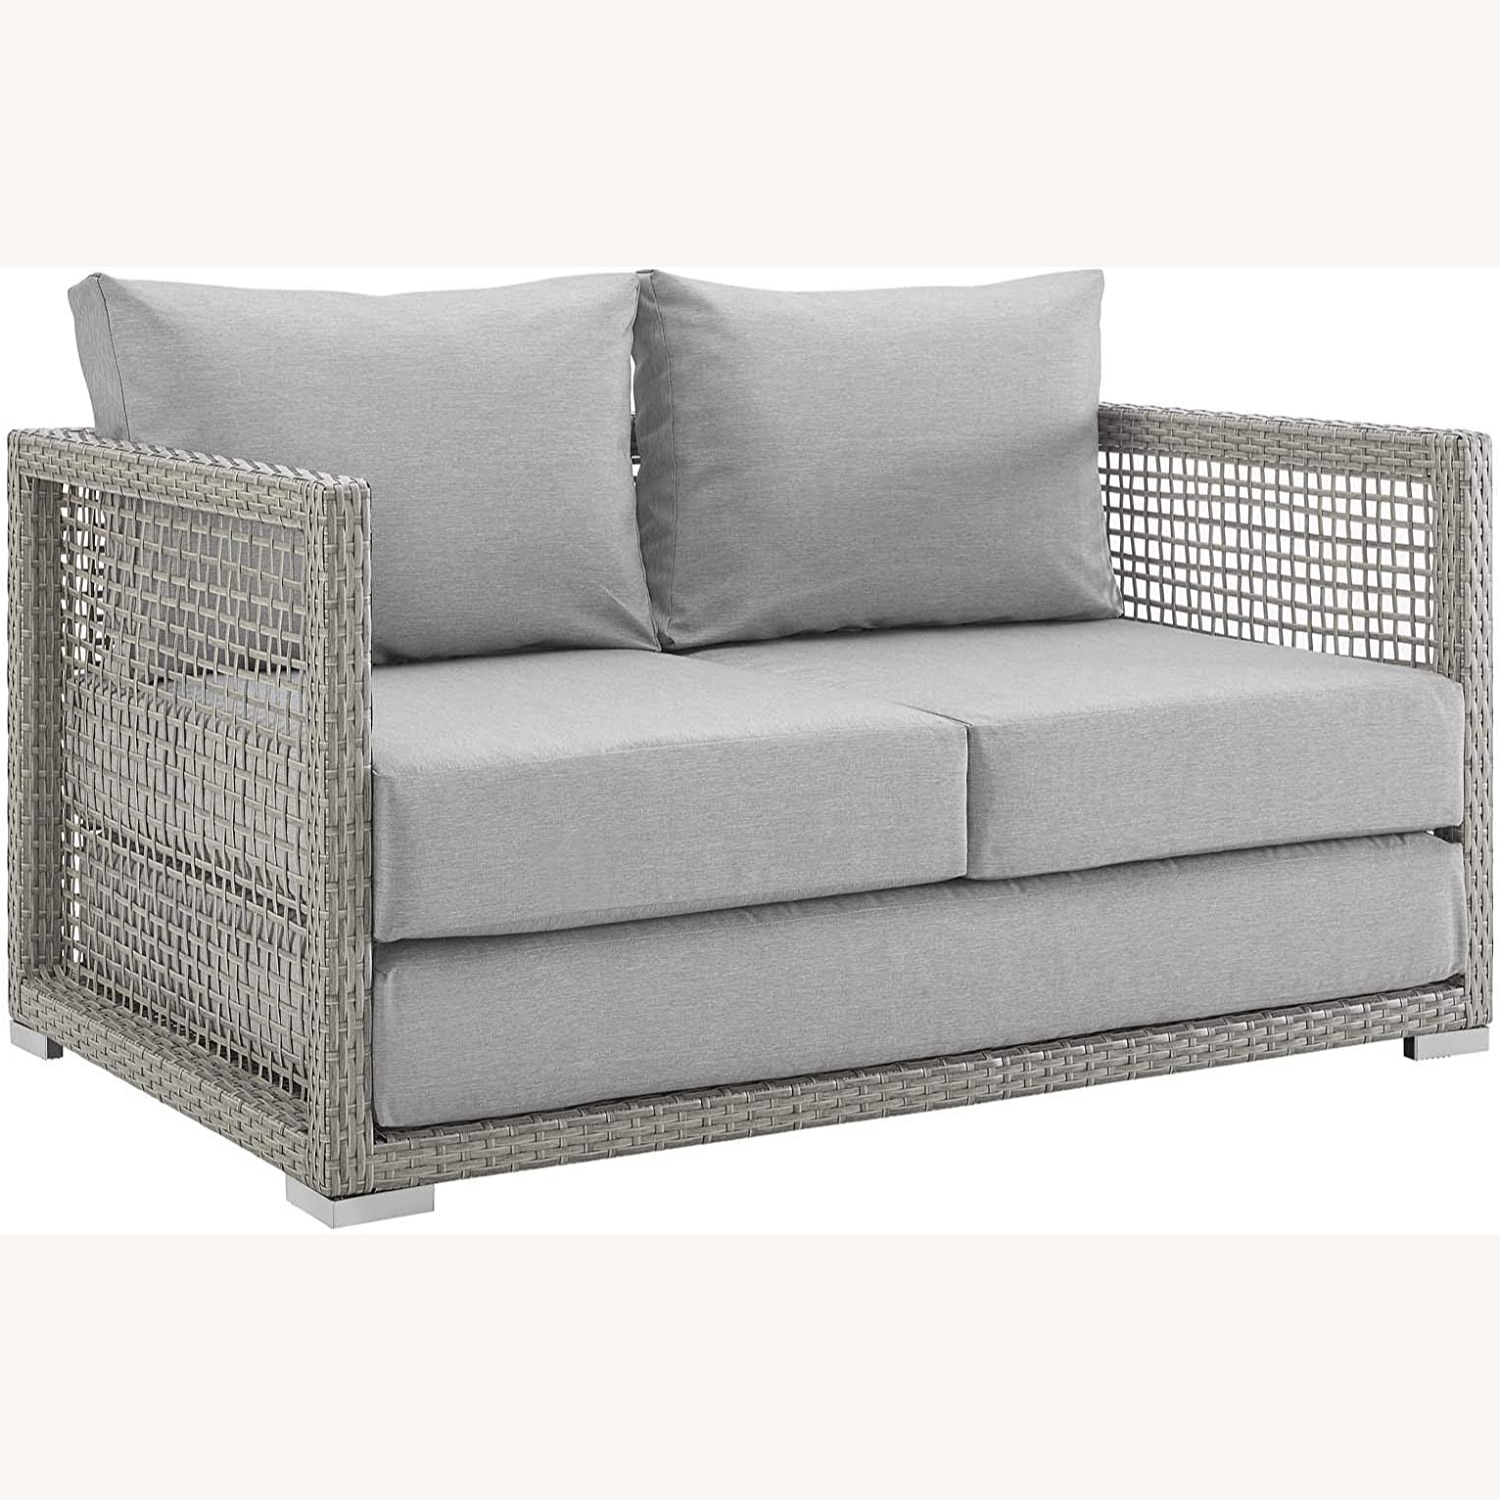 Outdoor Loveseat In Gray Rattan Weave Frame - image-0